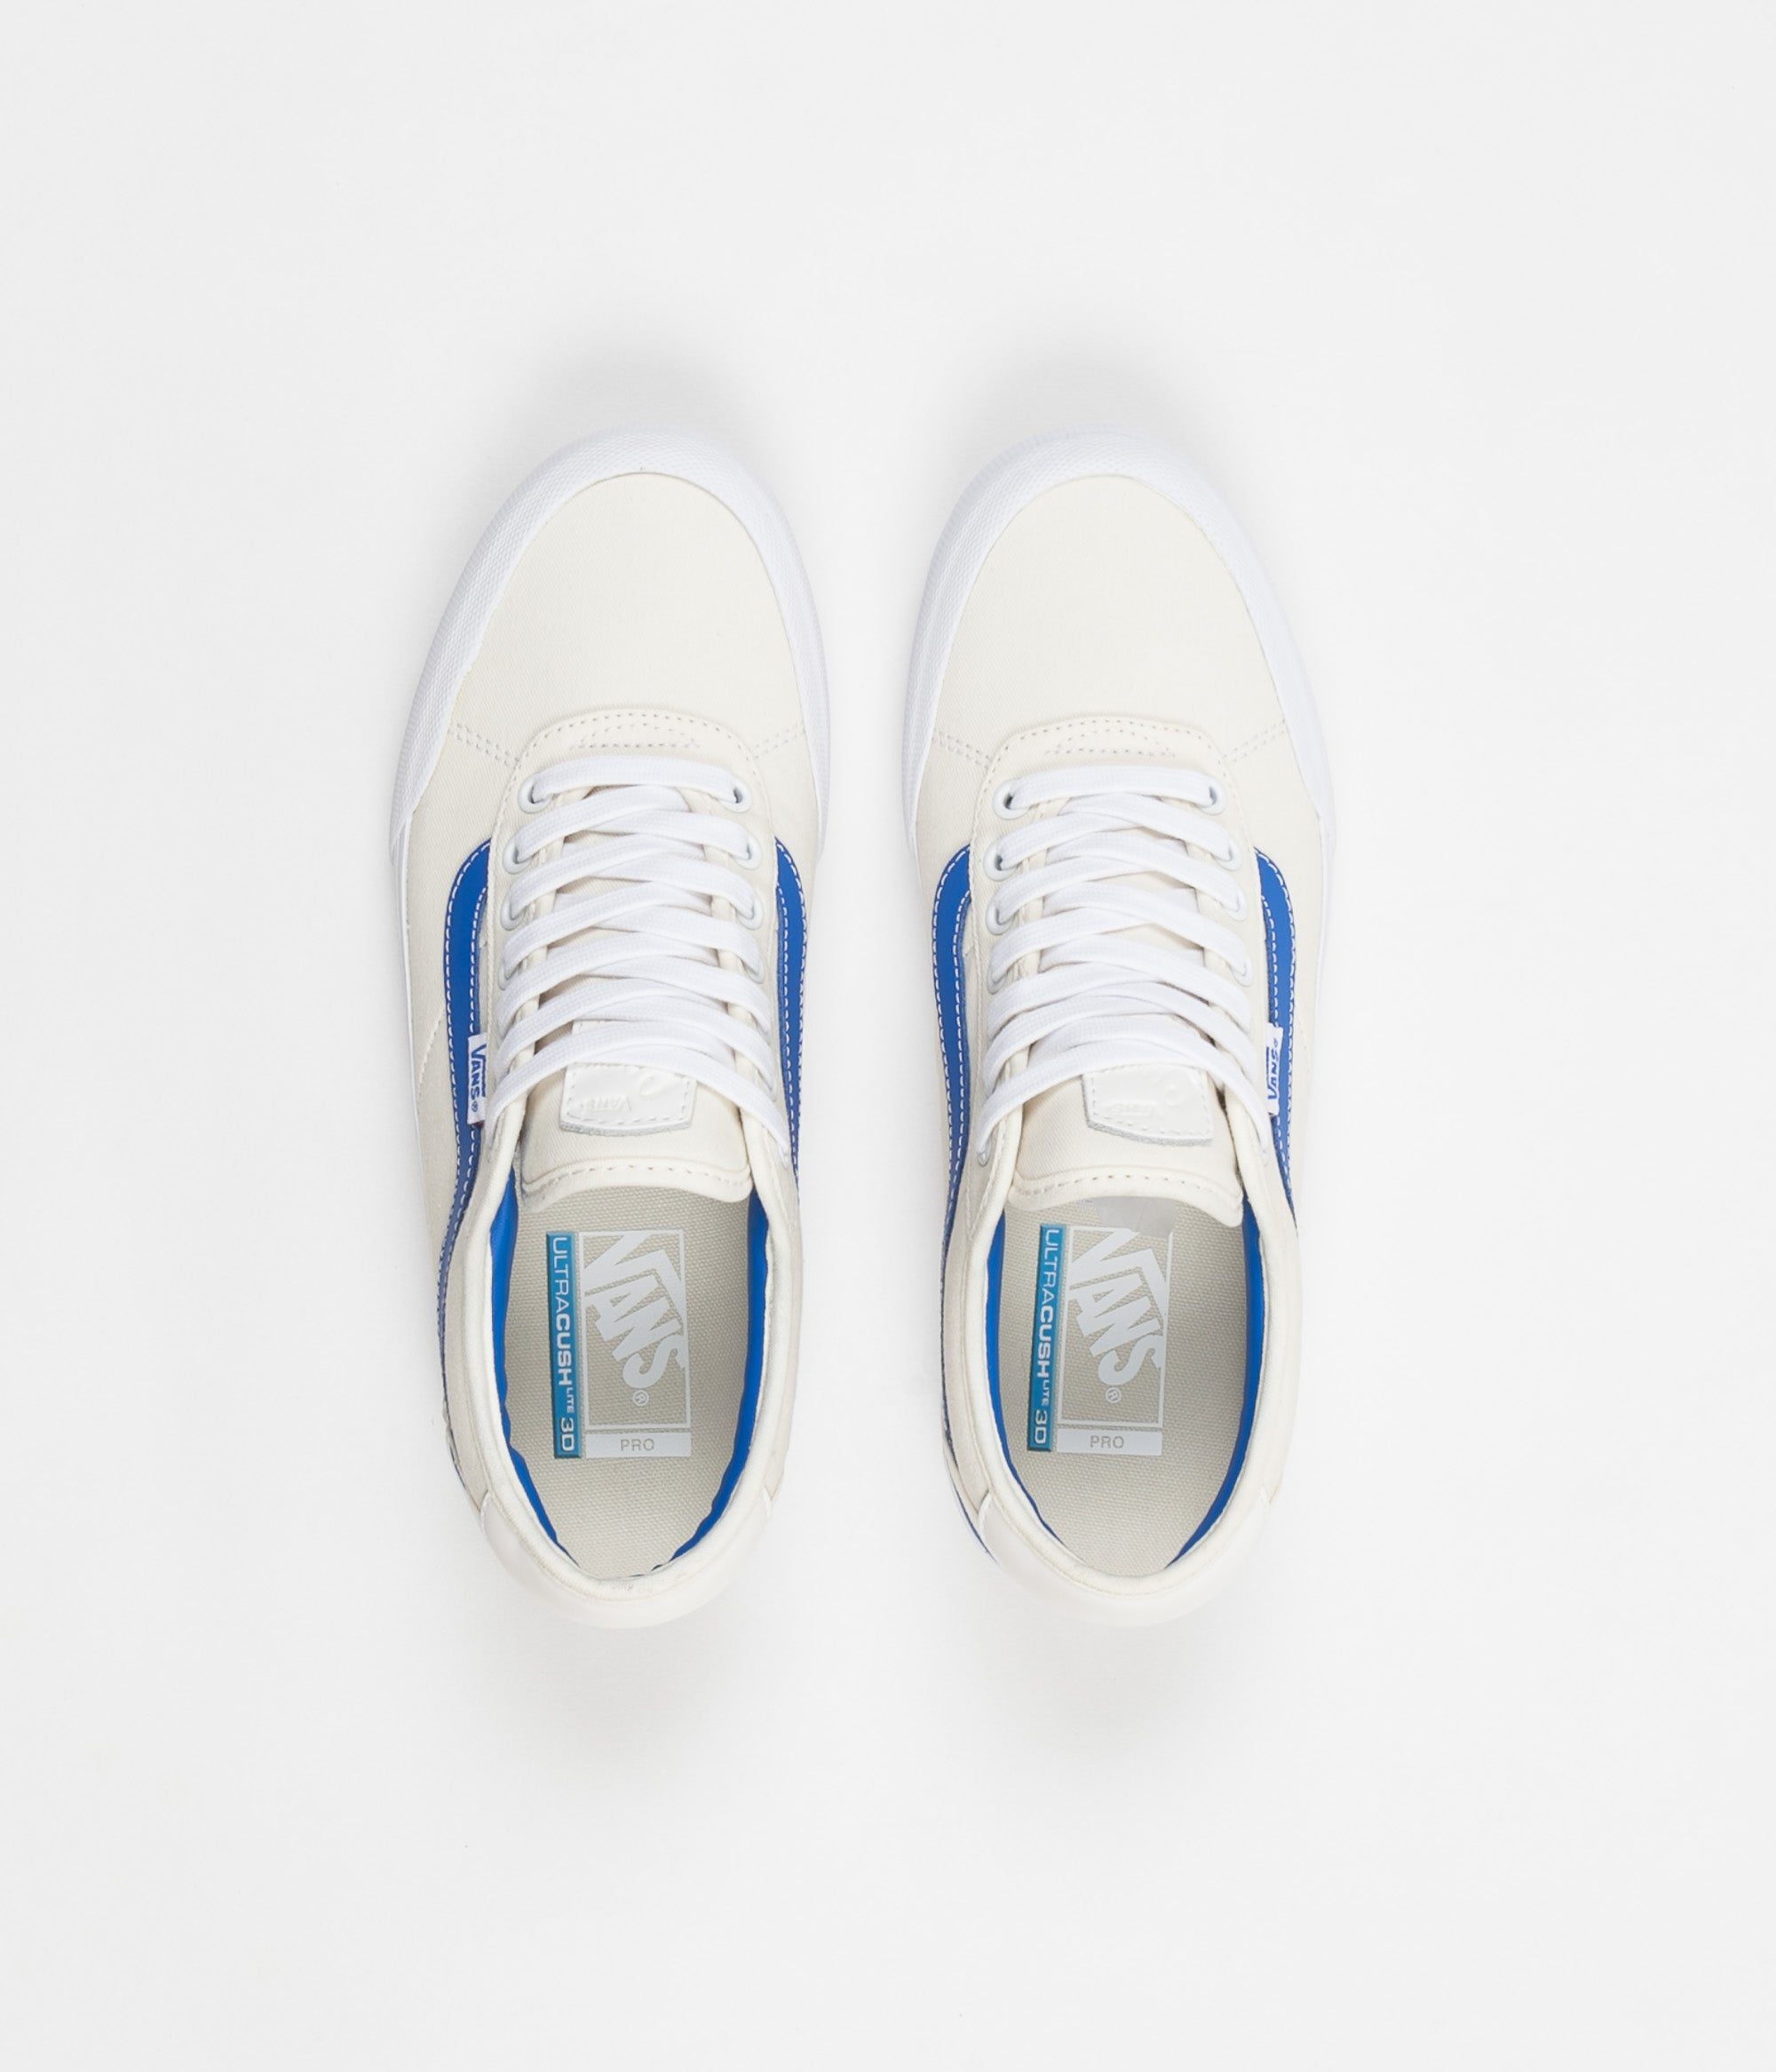 08758801728e70 Vans Chima Pro Centre Court Shoes - Classic White   Victoria Blue ...